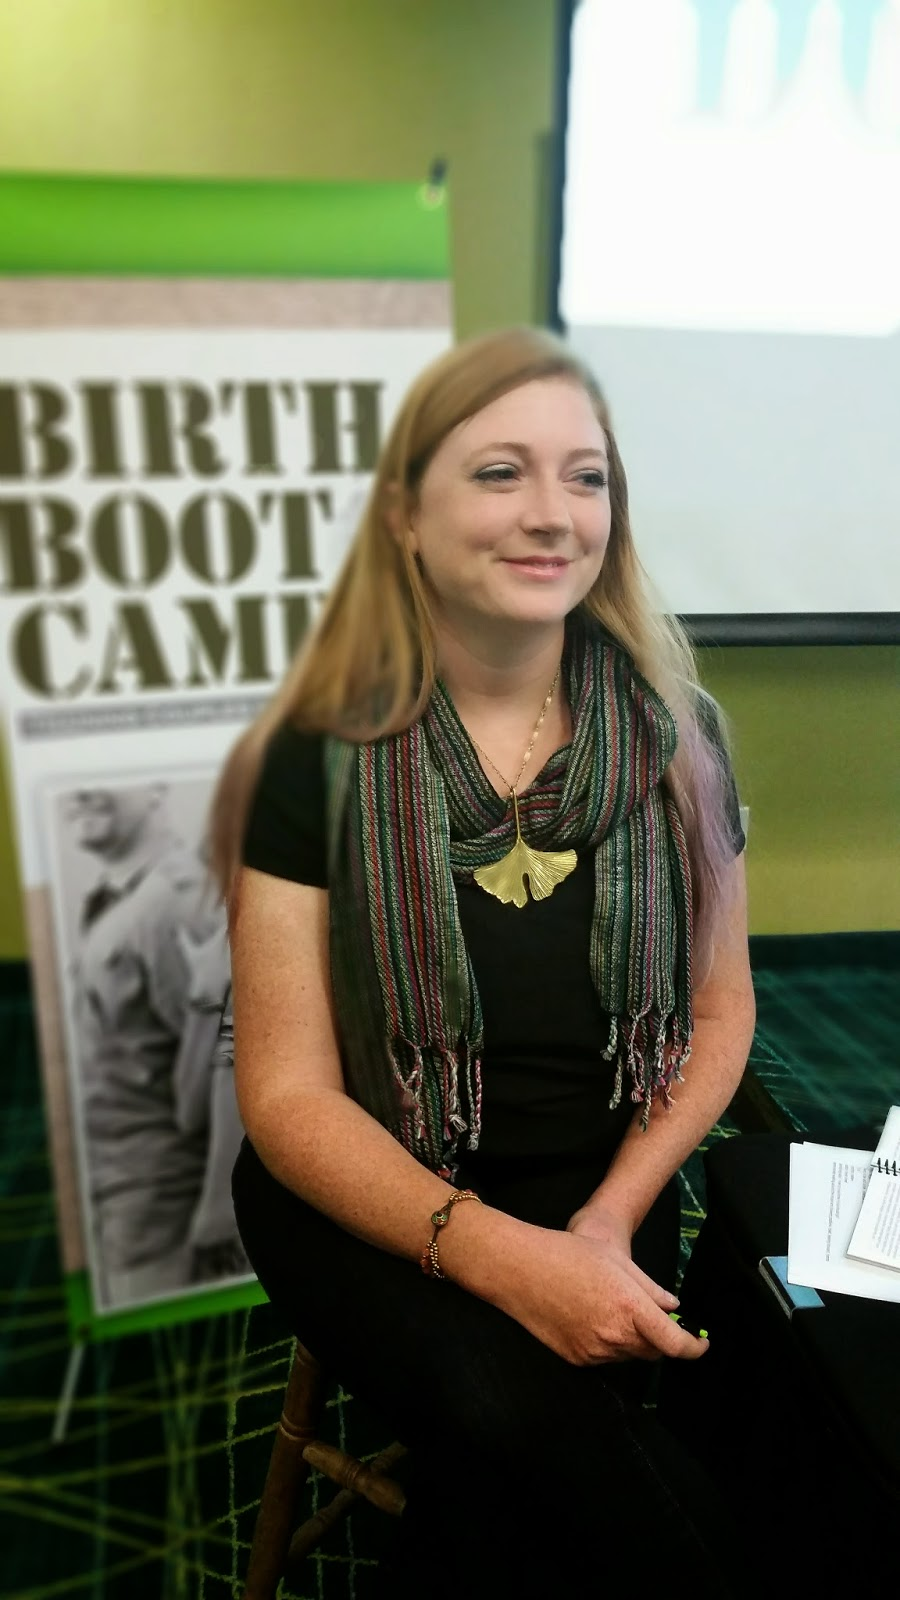 Amanda, a Birth Boot Camp DOULA trainer